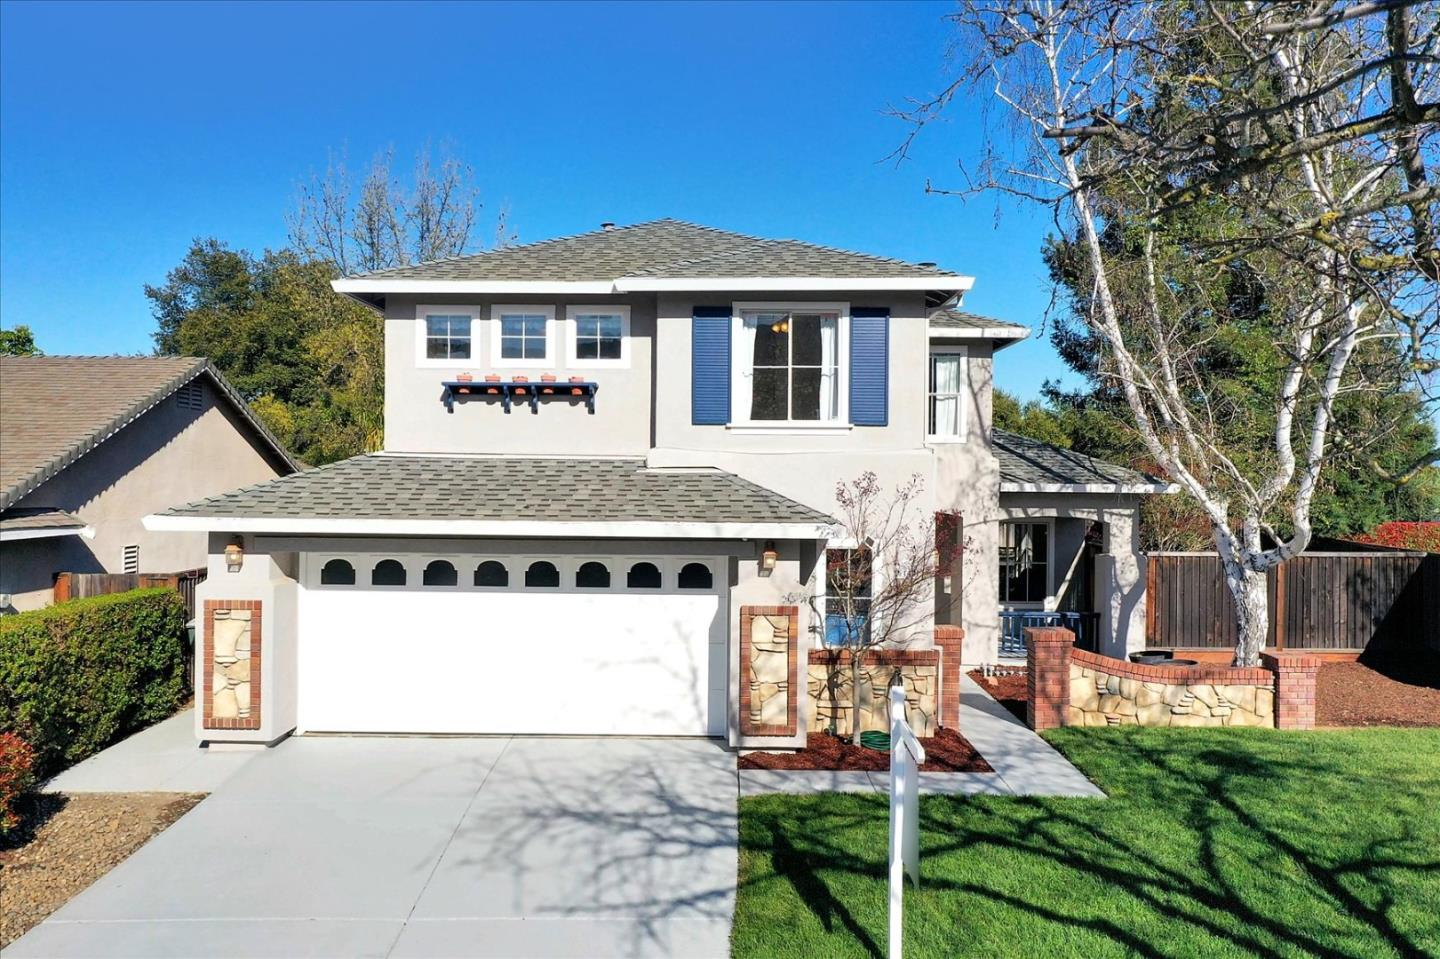 Photo of 6142 STARLING DR, GILROY, CA 95020